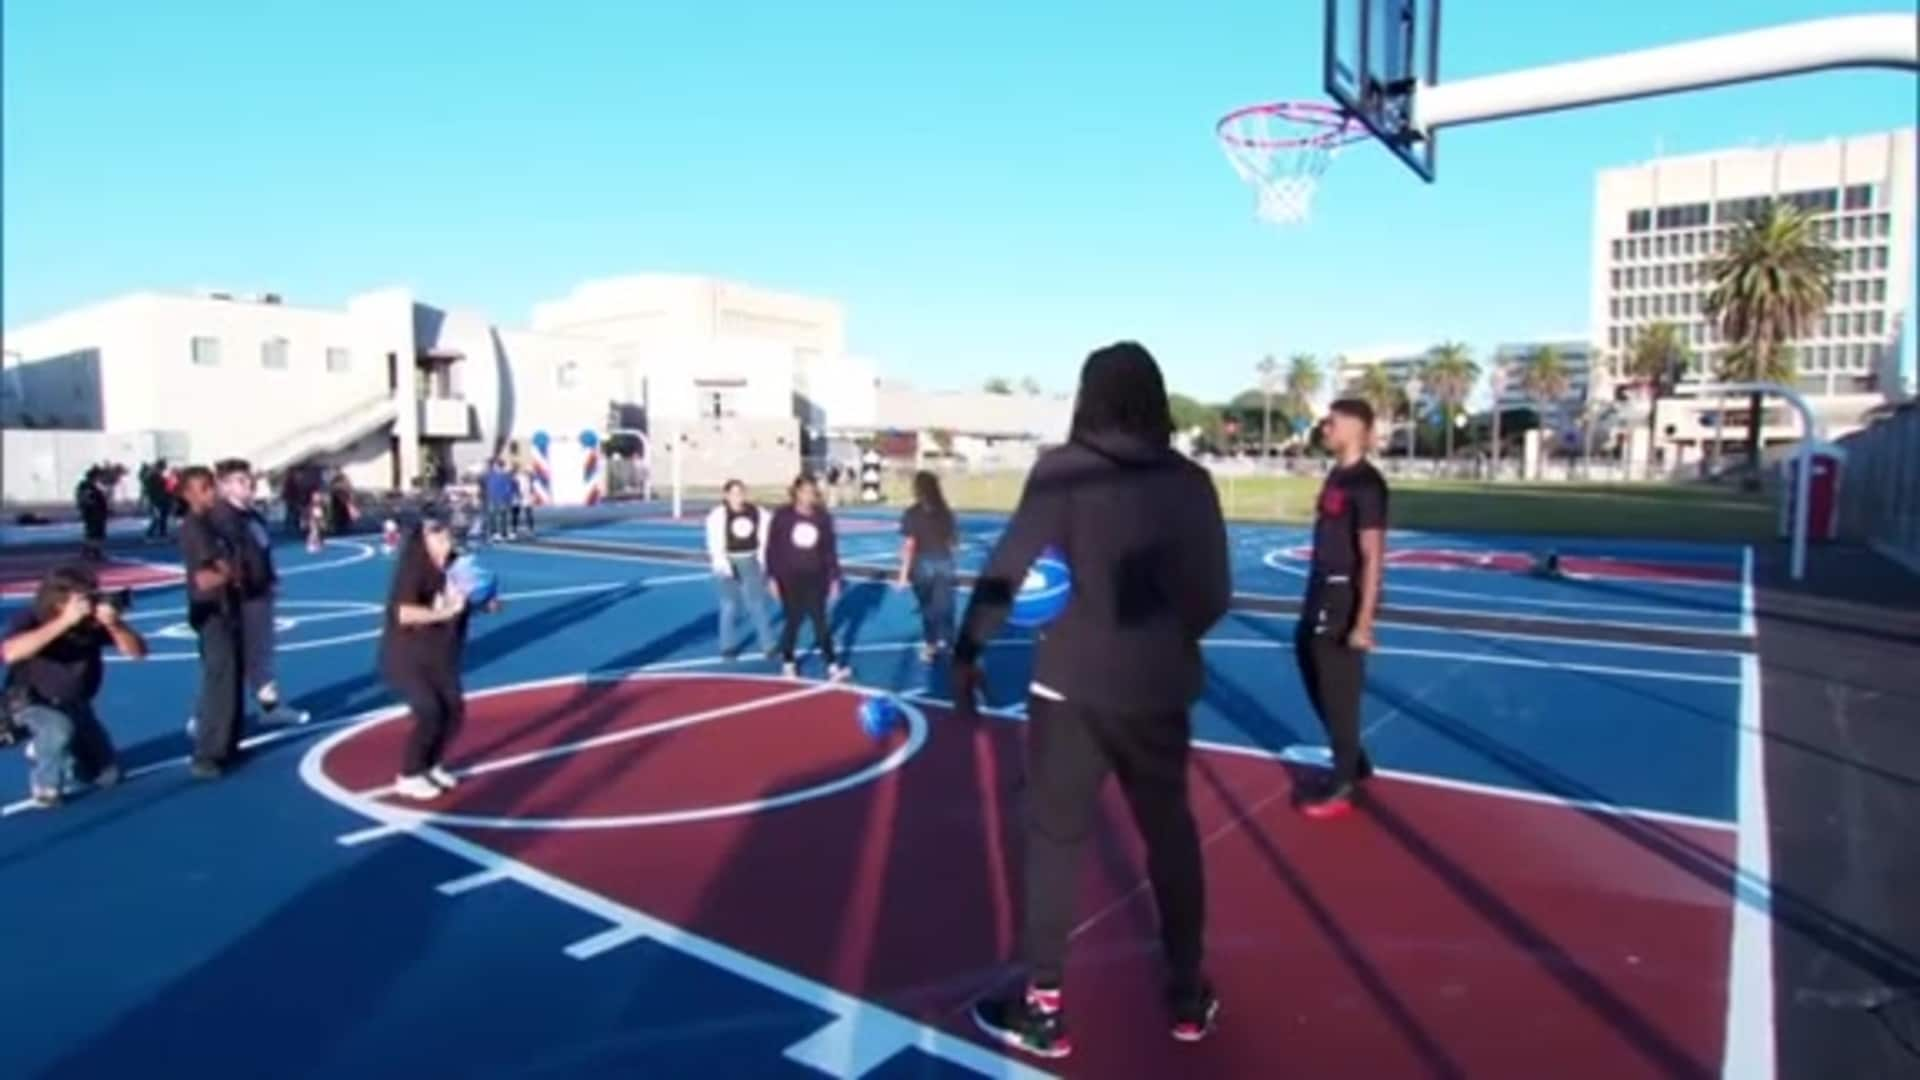 Community Courts Opening   Crozier (12.21.18)